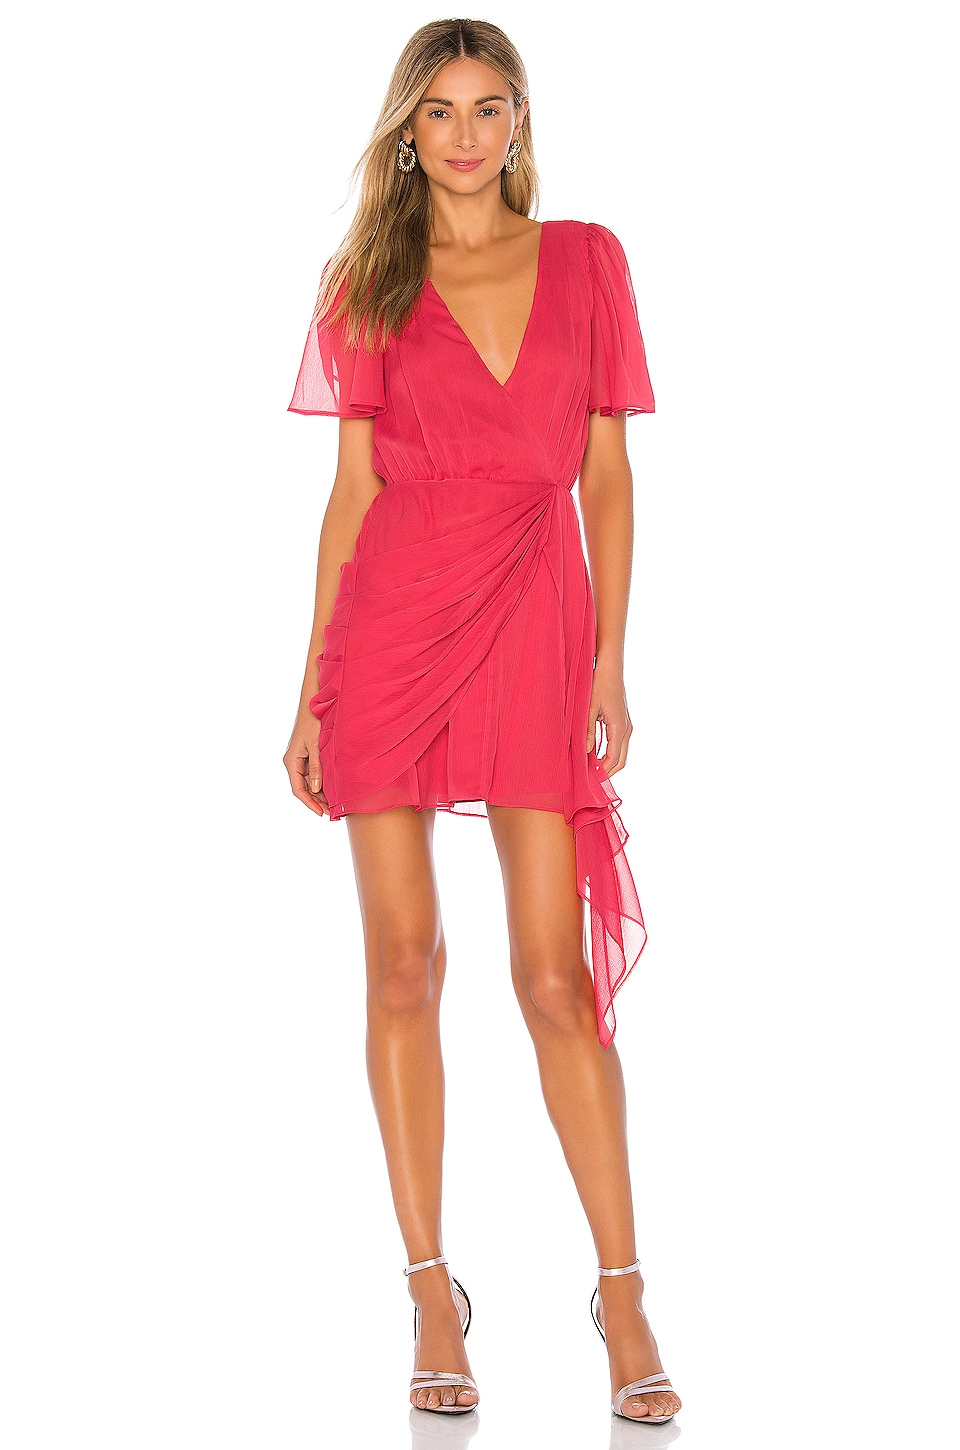 House of Harlow 1960 x REVOLVE Rosalie Dress in Coral